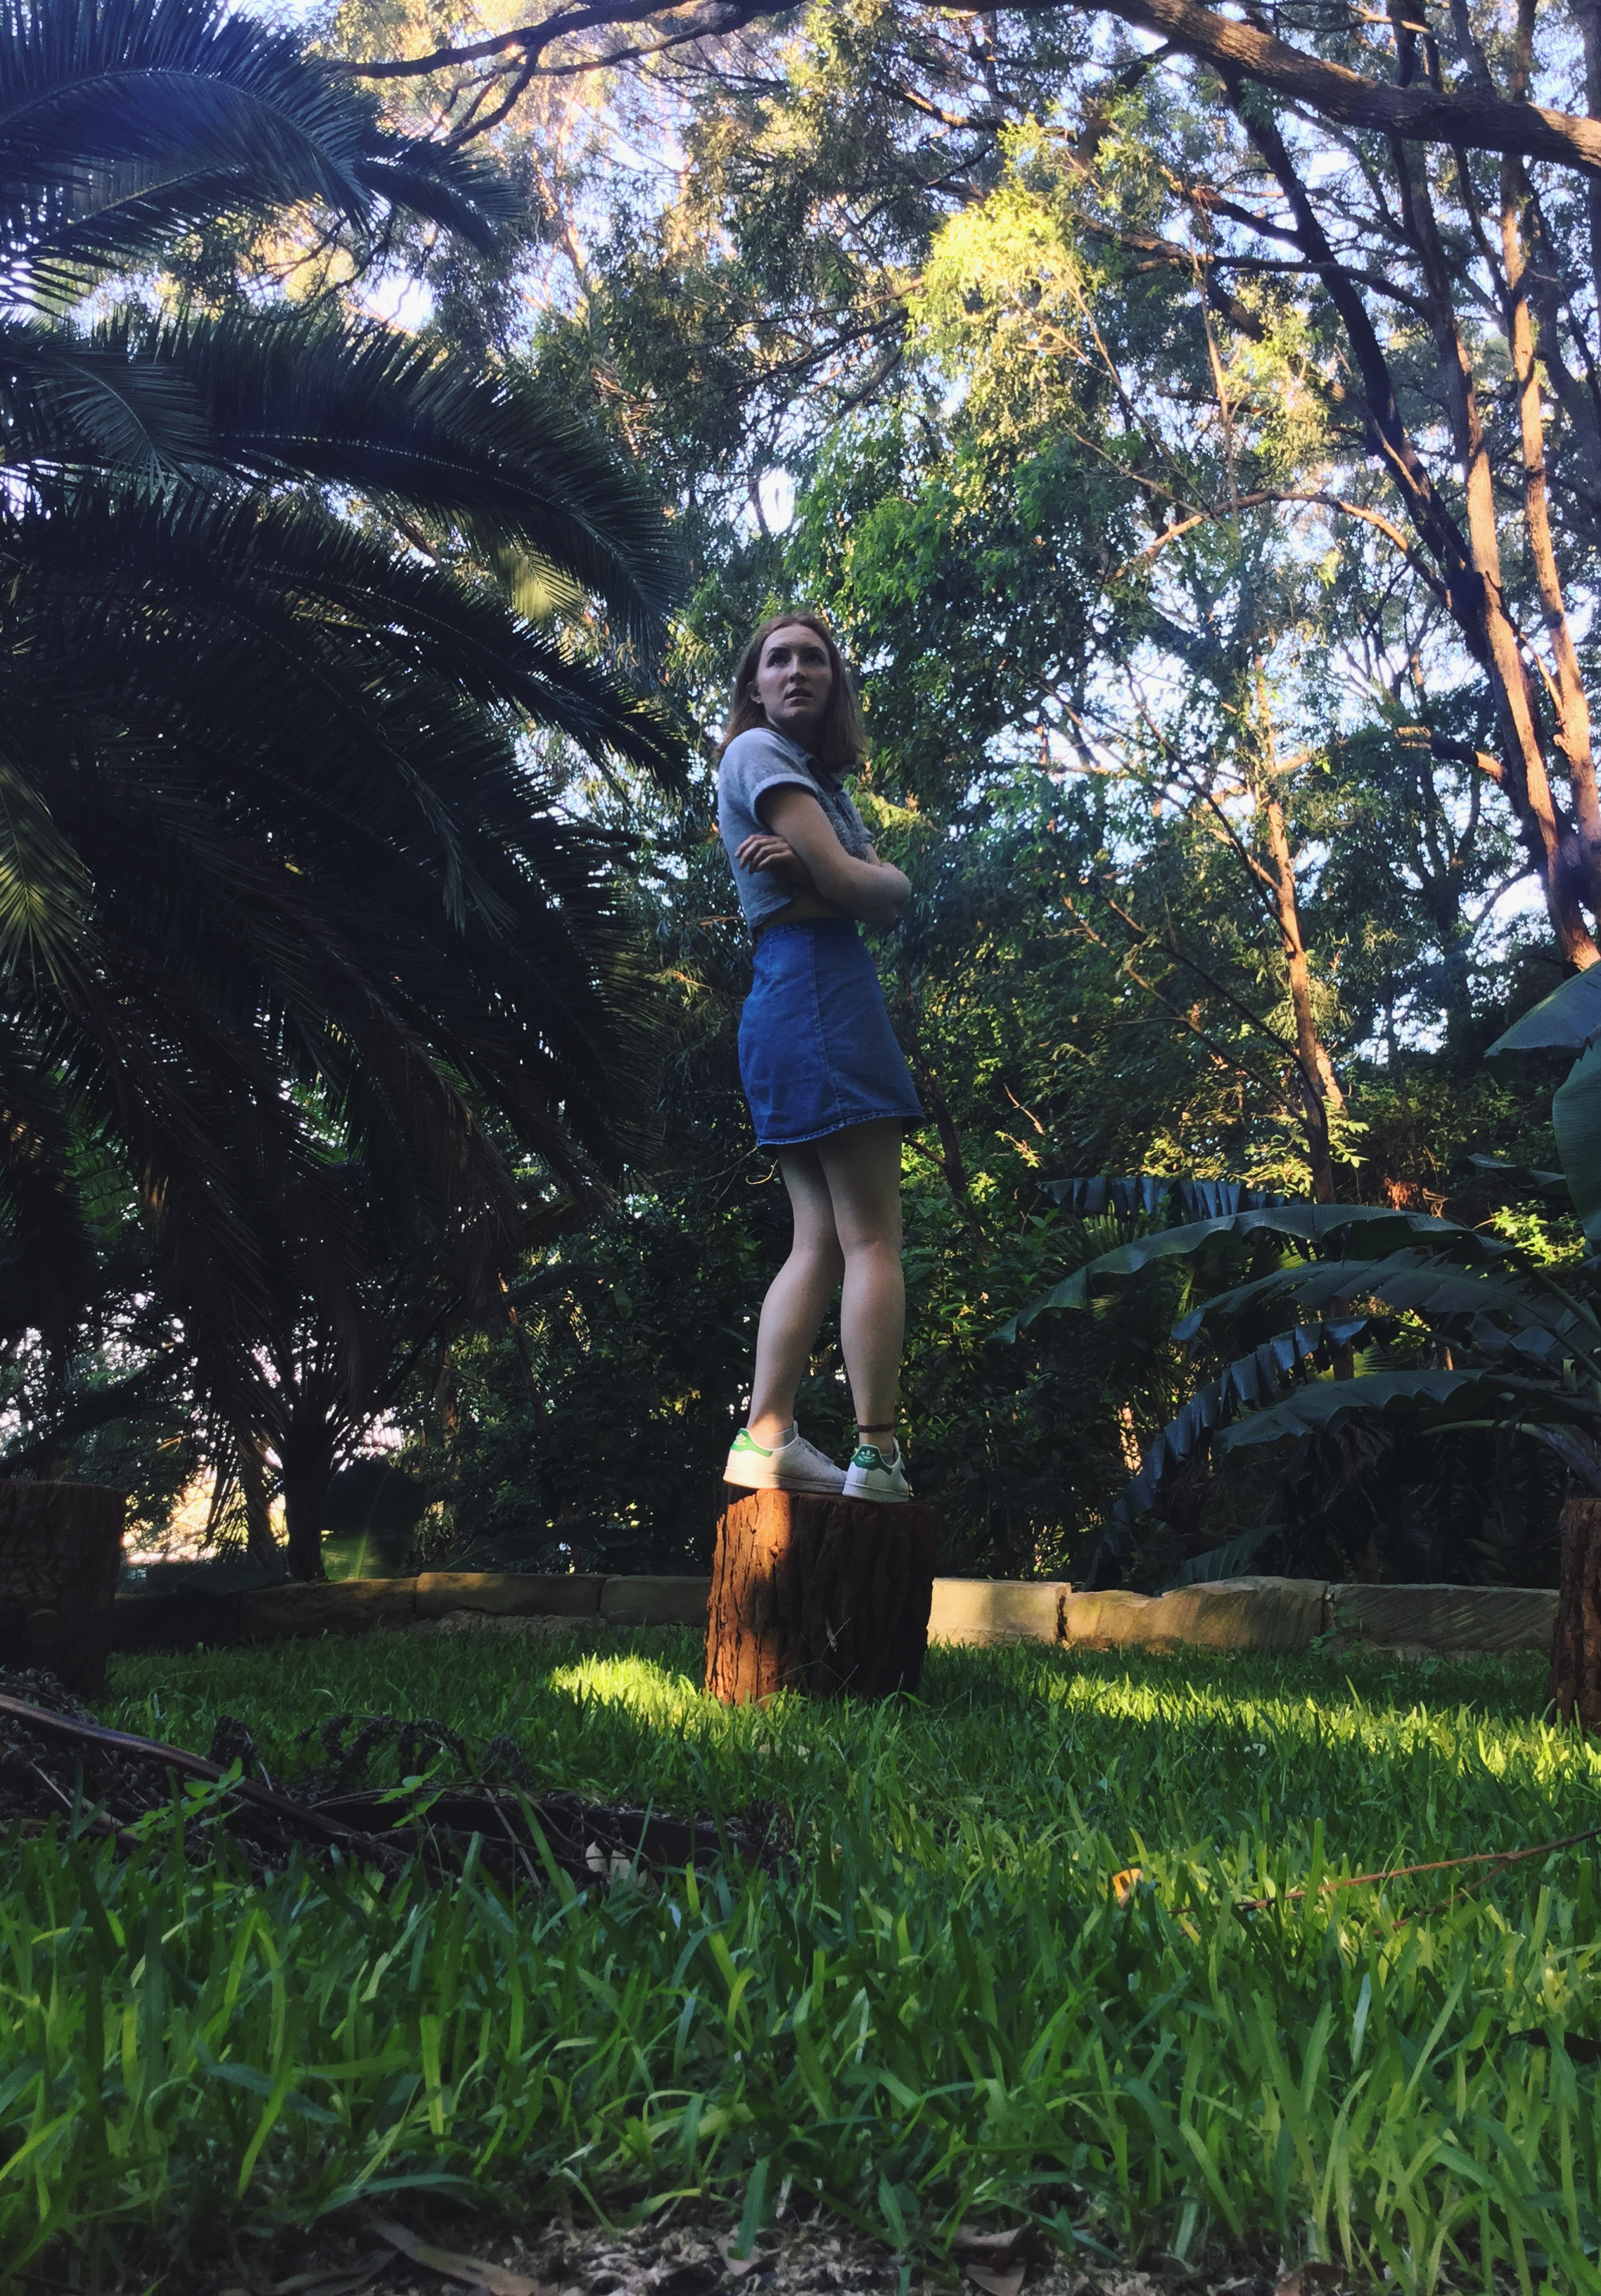 that relatable moment when ur taking a photo and a kookaburra scares the living daylights outta u